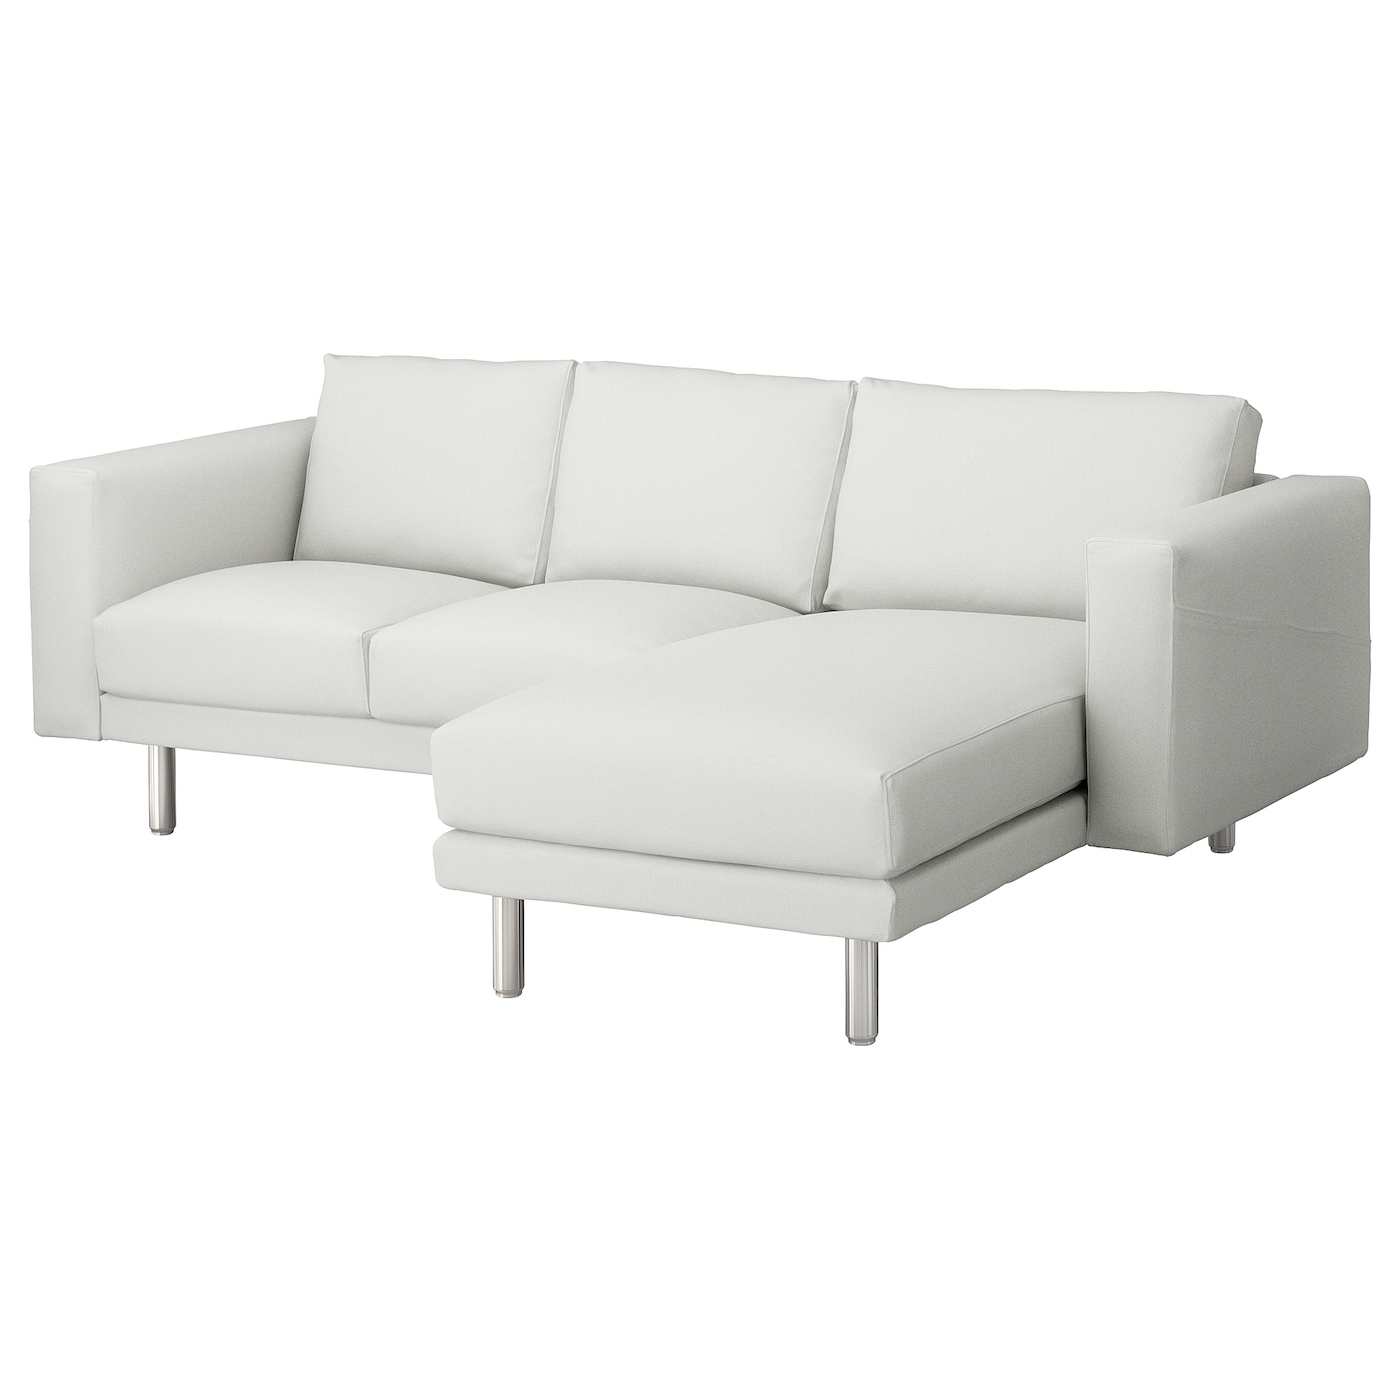 norsborg 3 seat sofa with chaise longue finnsta white metal ikea. Black Bedroom Furniture Sets. Home Design Ideas